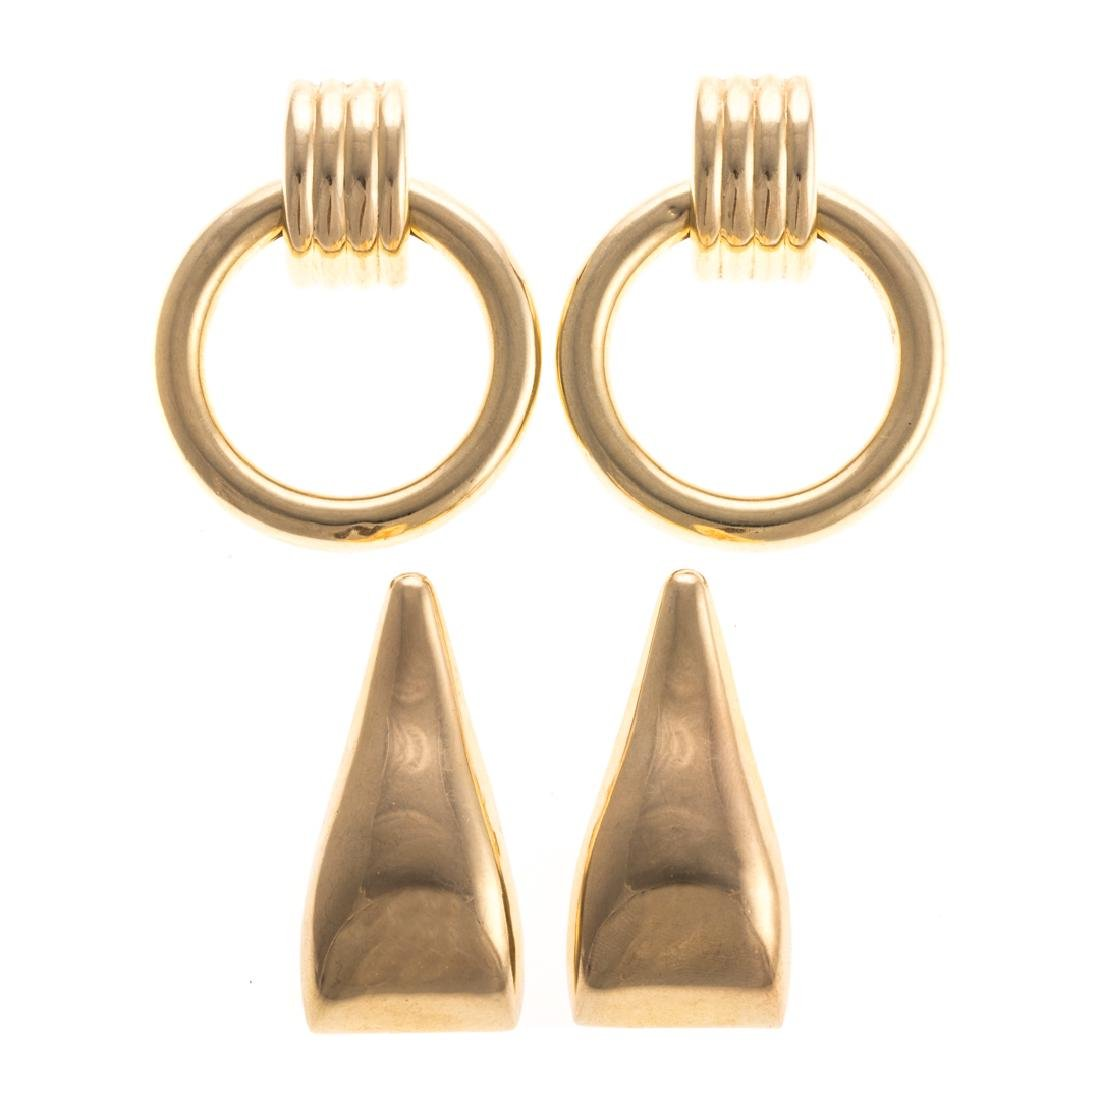 Two Pair of Lady's Gold Earrings in 14K